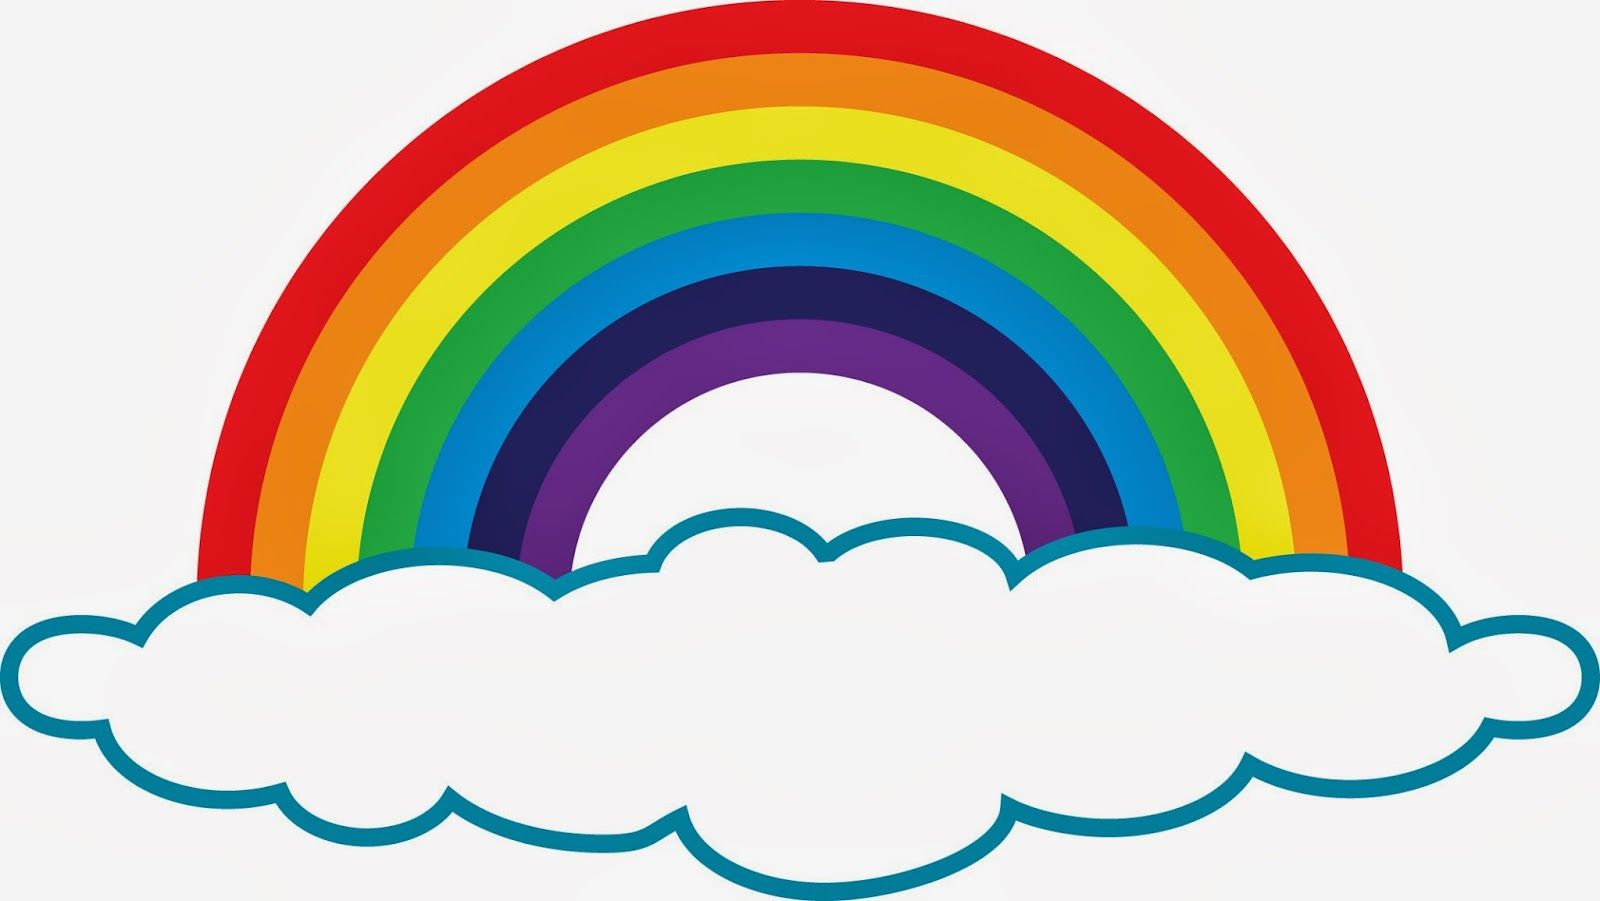 rainbow clip art | Rainbow Clip Art (With images) | Rainbow ...